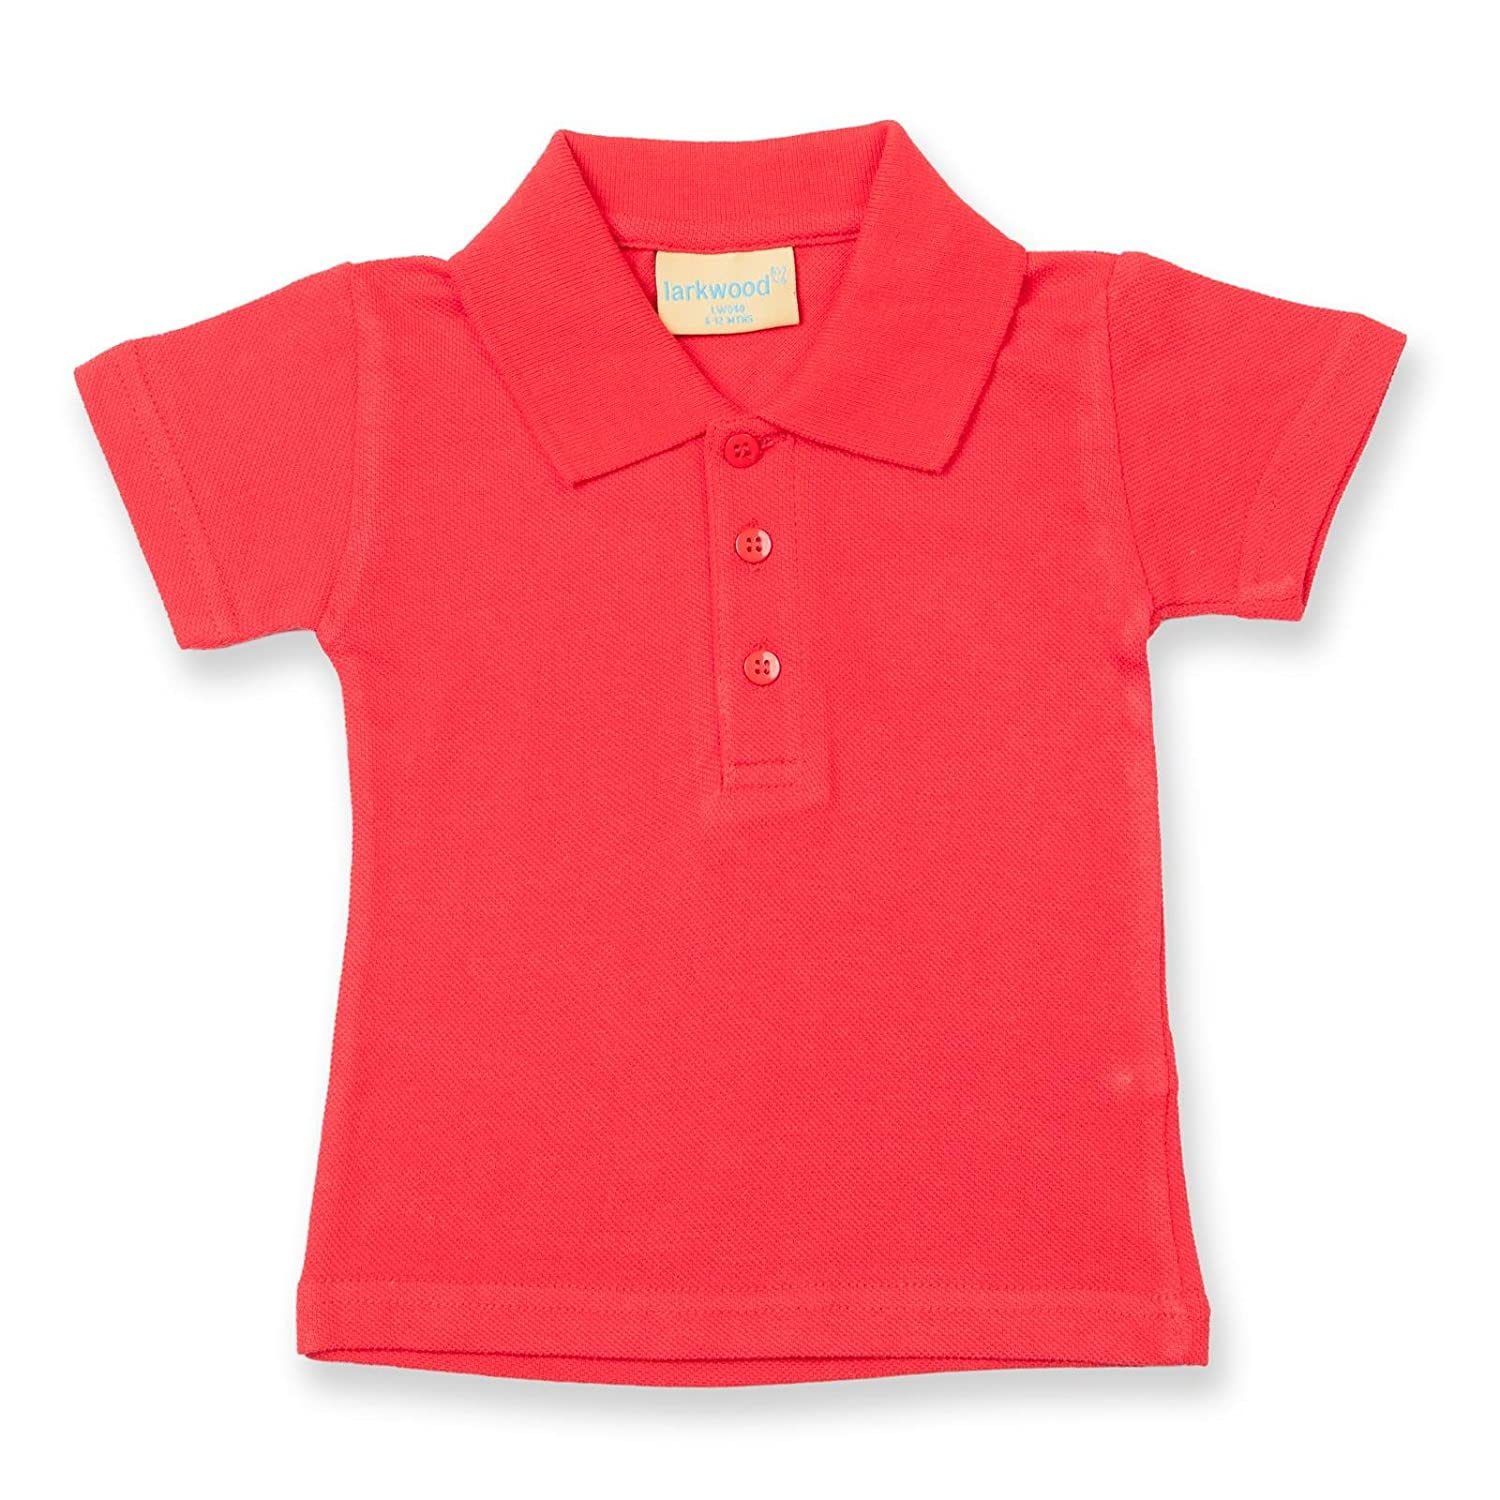 Larkwood Baby Infants Button Placket Flat Knit Polo Shirts 0-36 Months